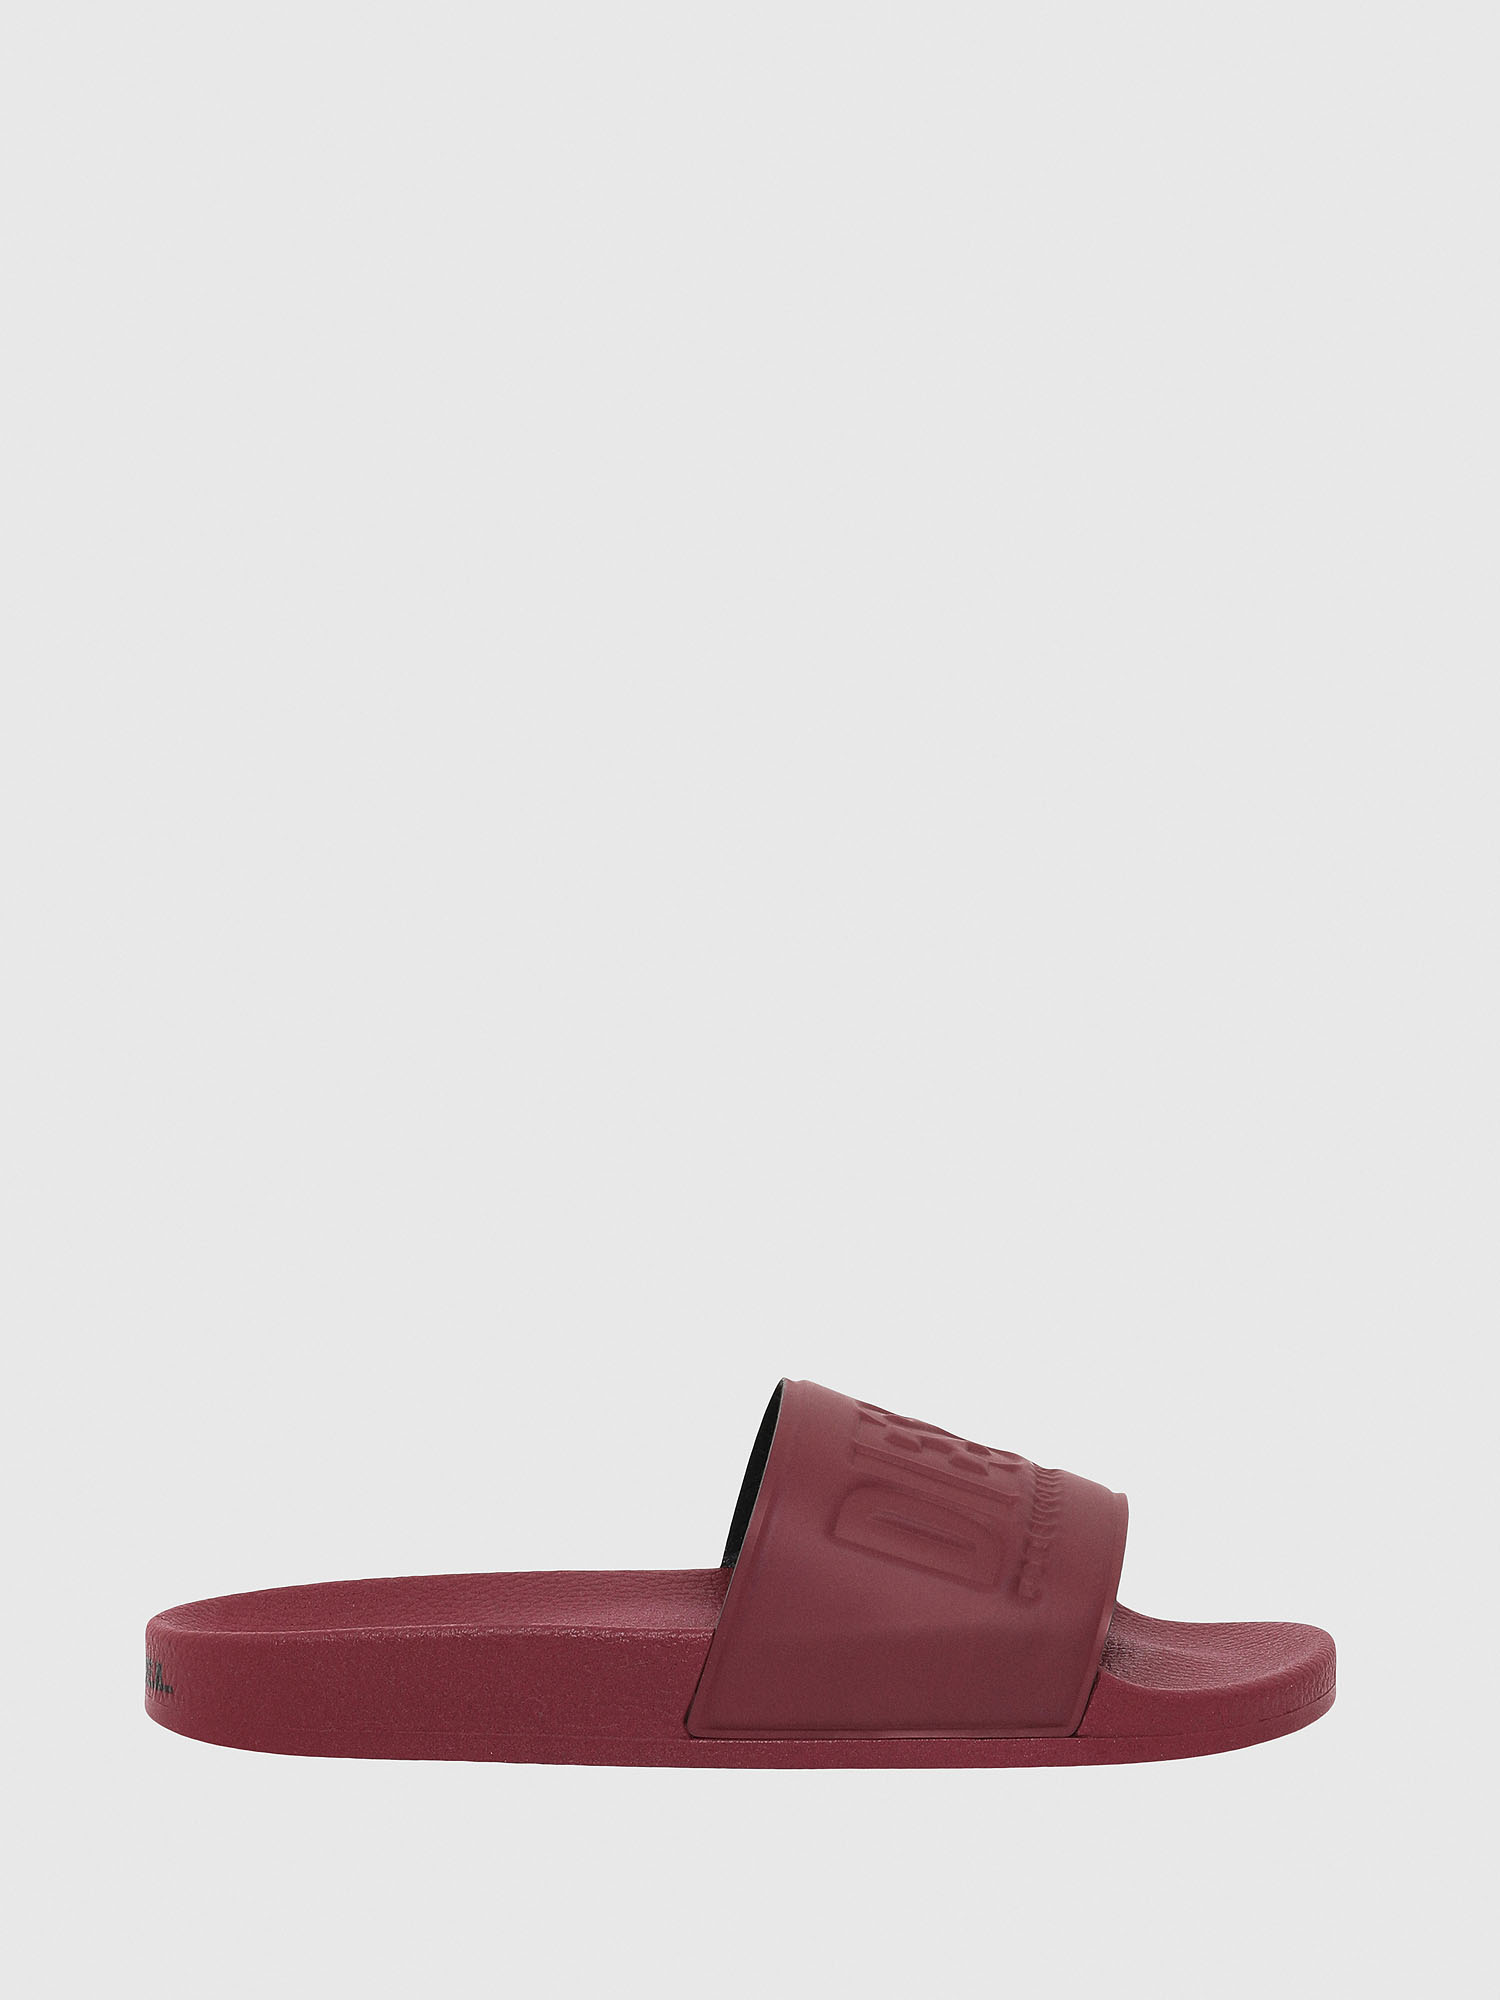 Diesel - SA-VALLA, Bordeaux - Slippers - Image 1